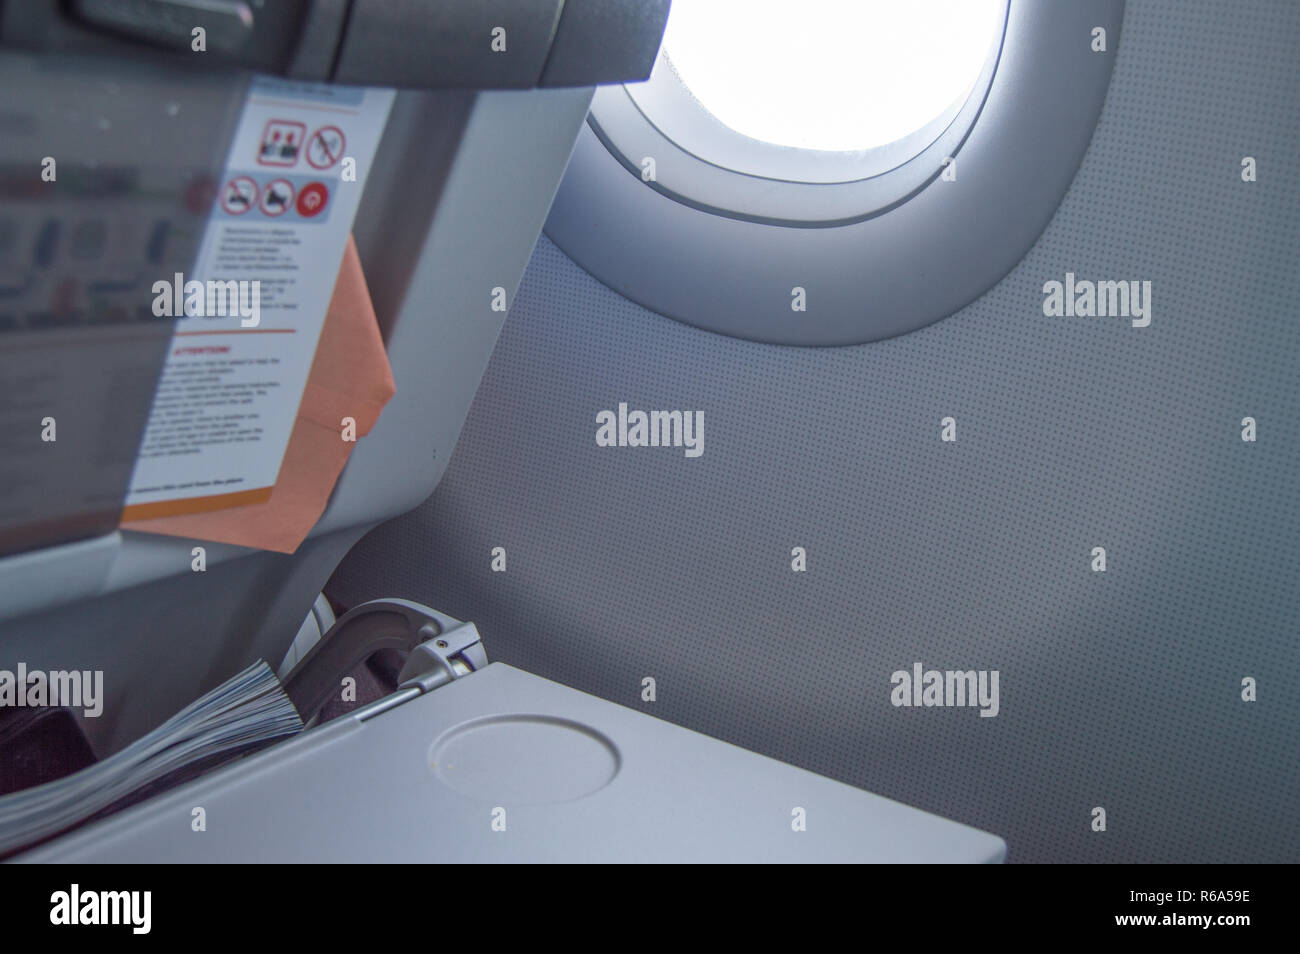 Folding table, flight instructions, magazine in the front seat, porthole, concept of flights and travel - Stock Image